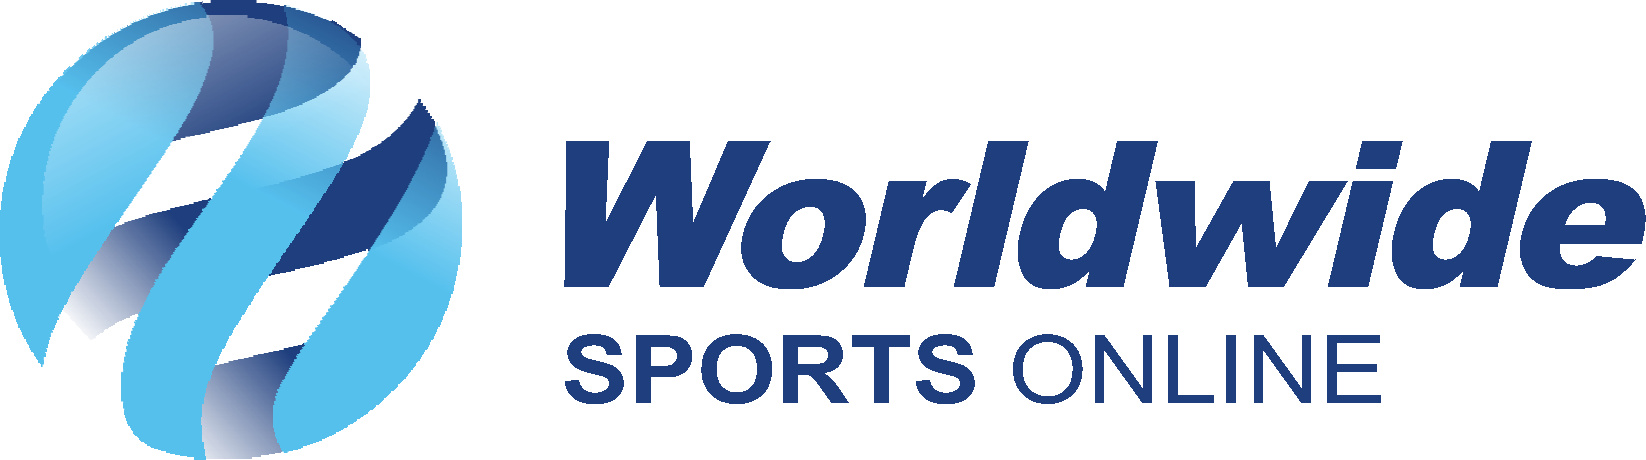 Worldwide logo